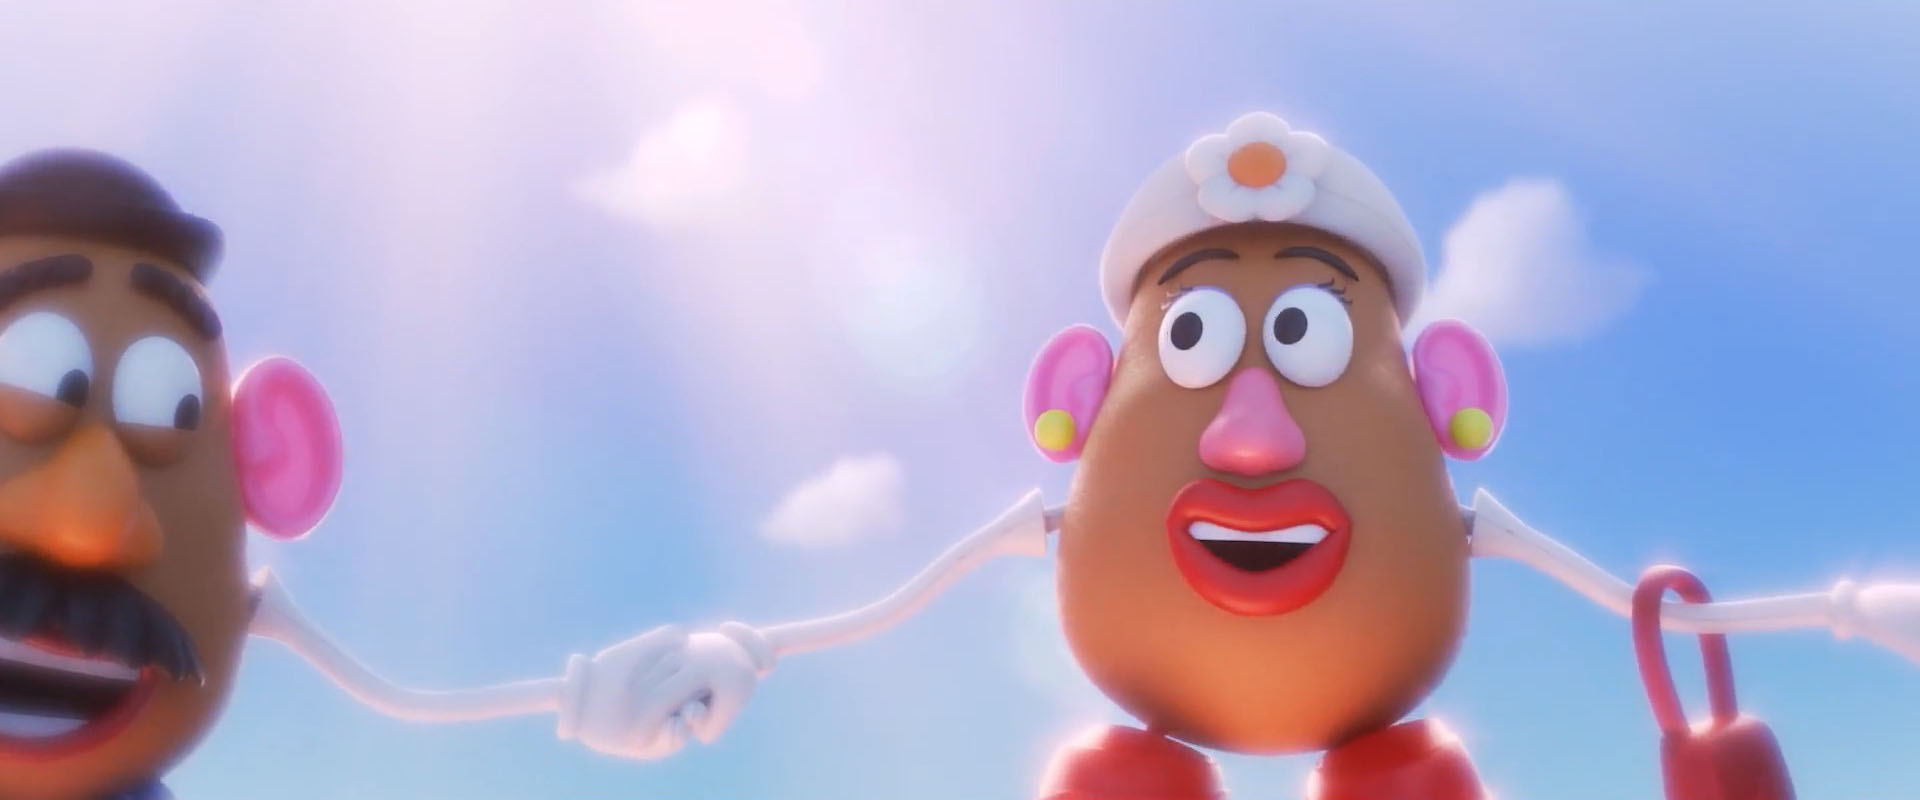 Toy Story 4 Trailer Introduces An All New Toy Forky The